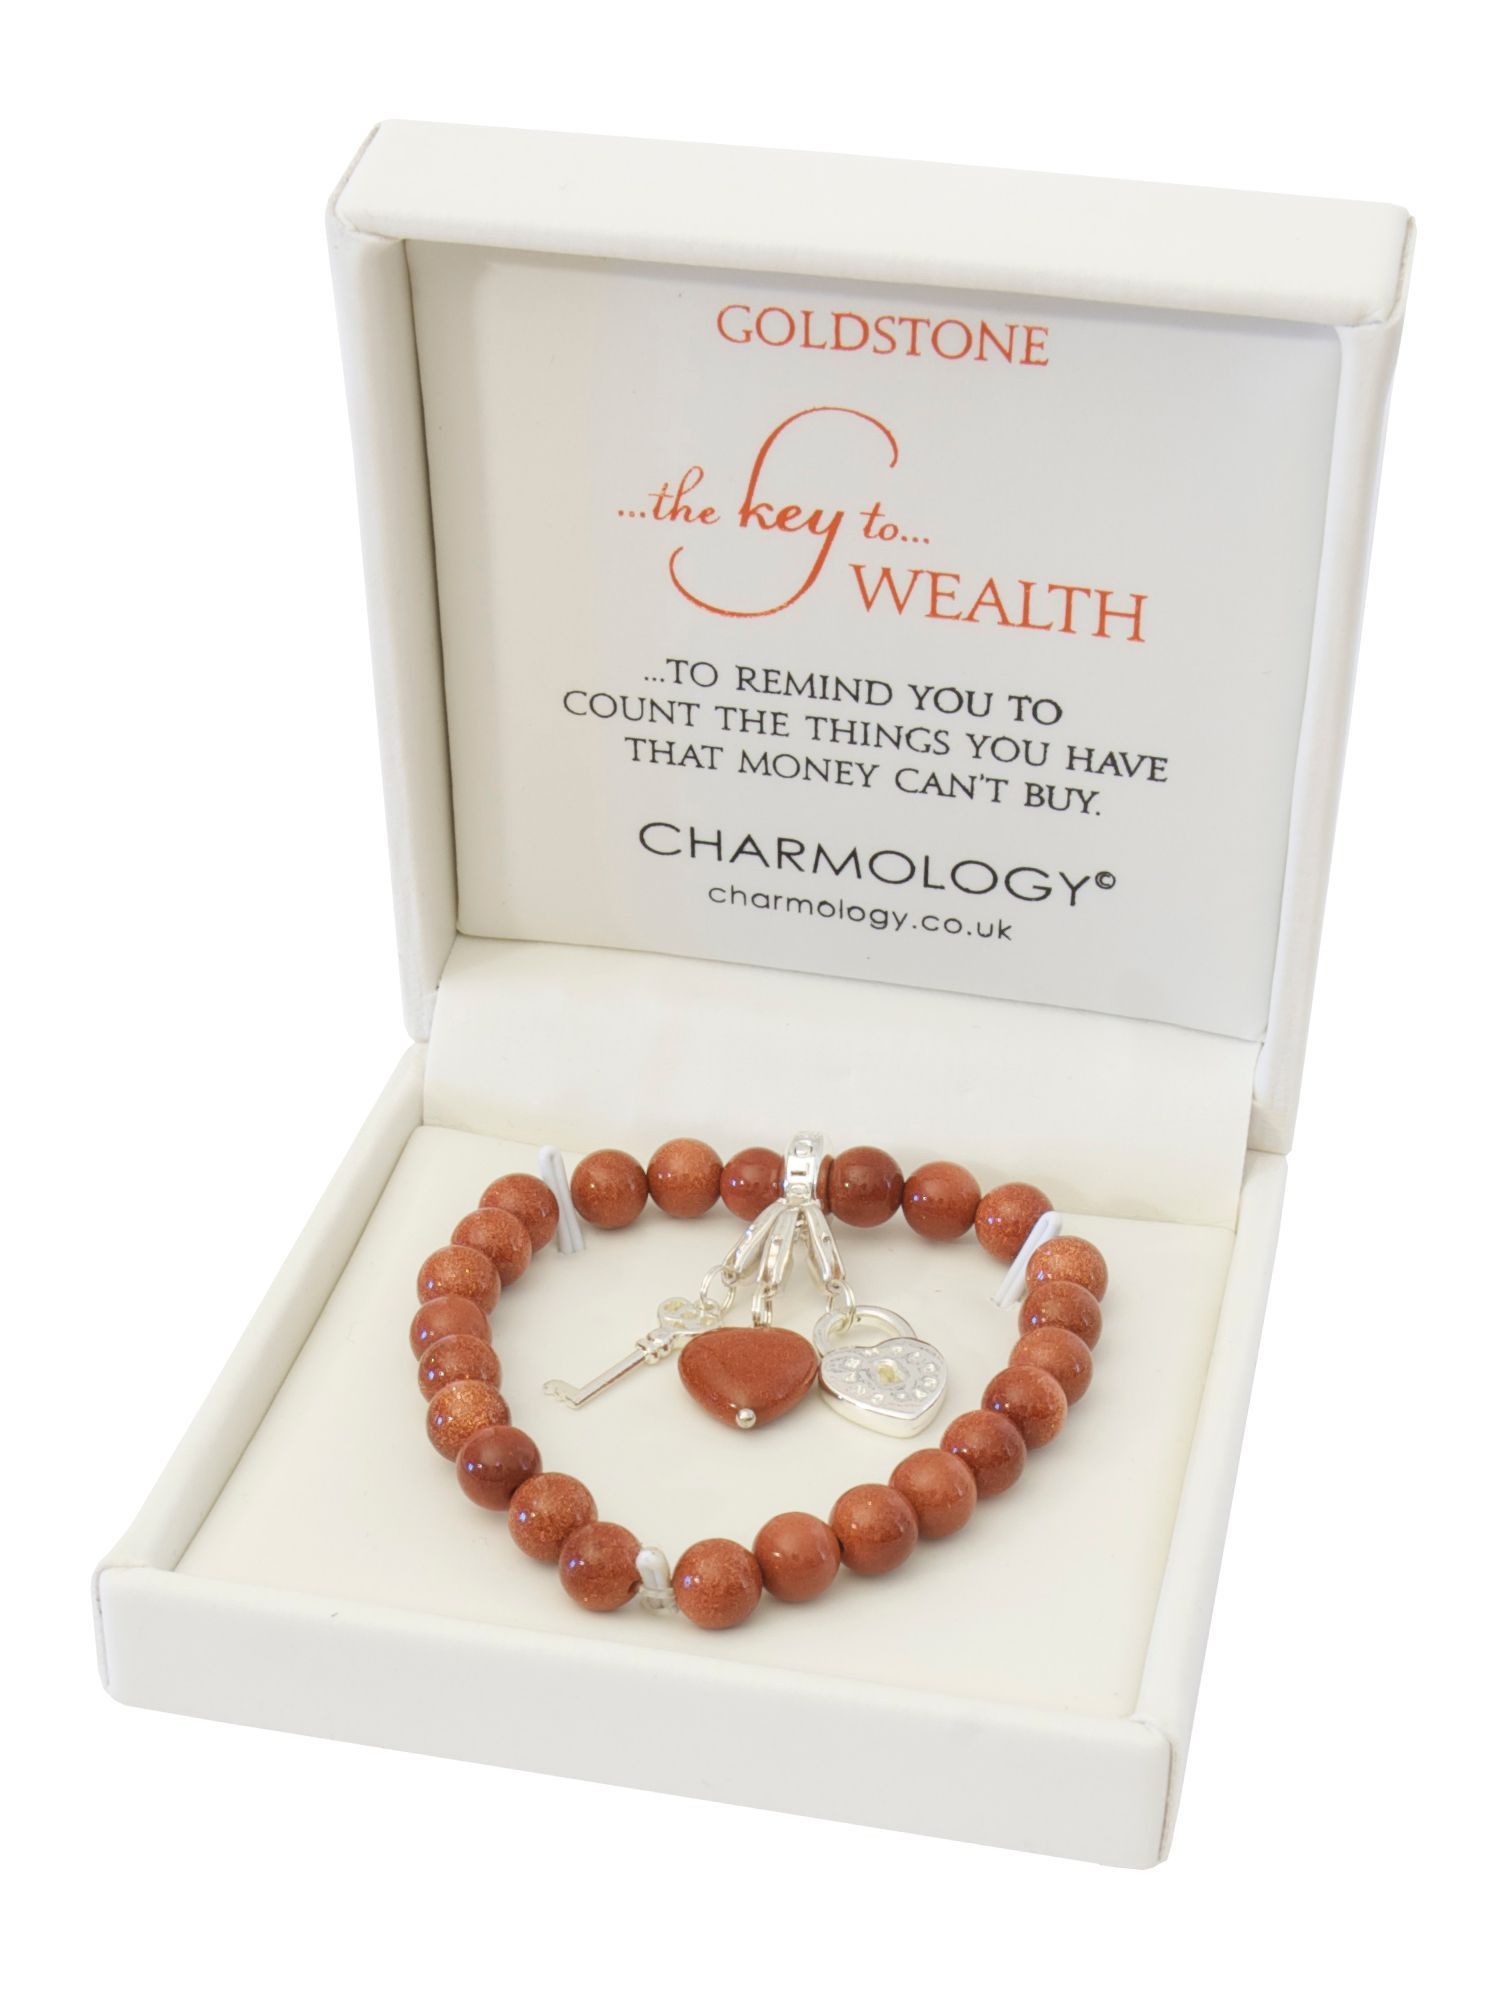 Charmology key to wealth goldstone charm bracelet